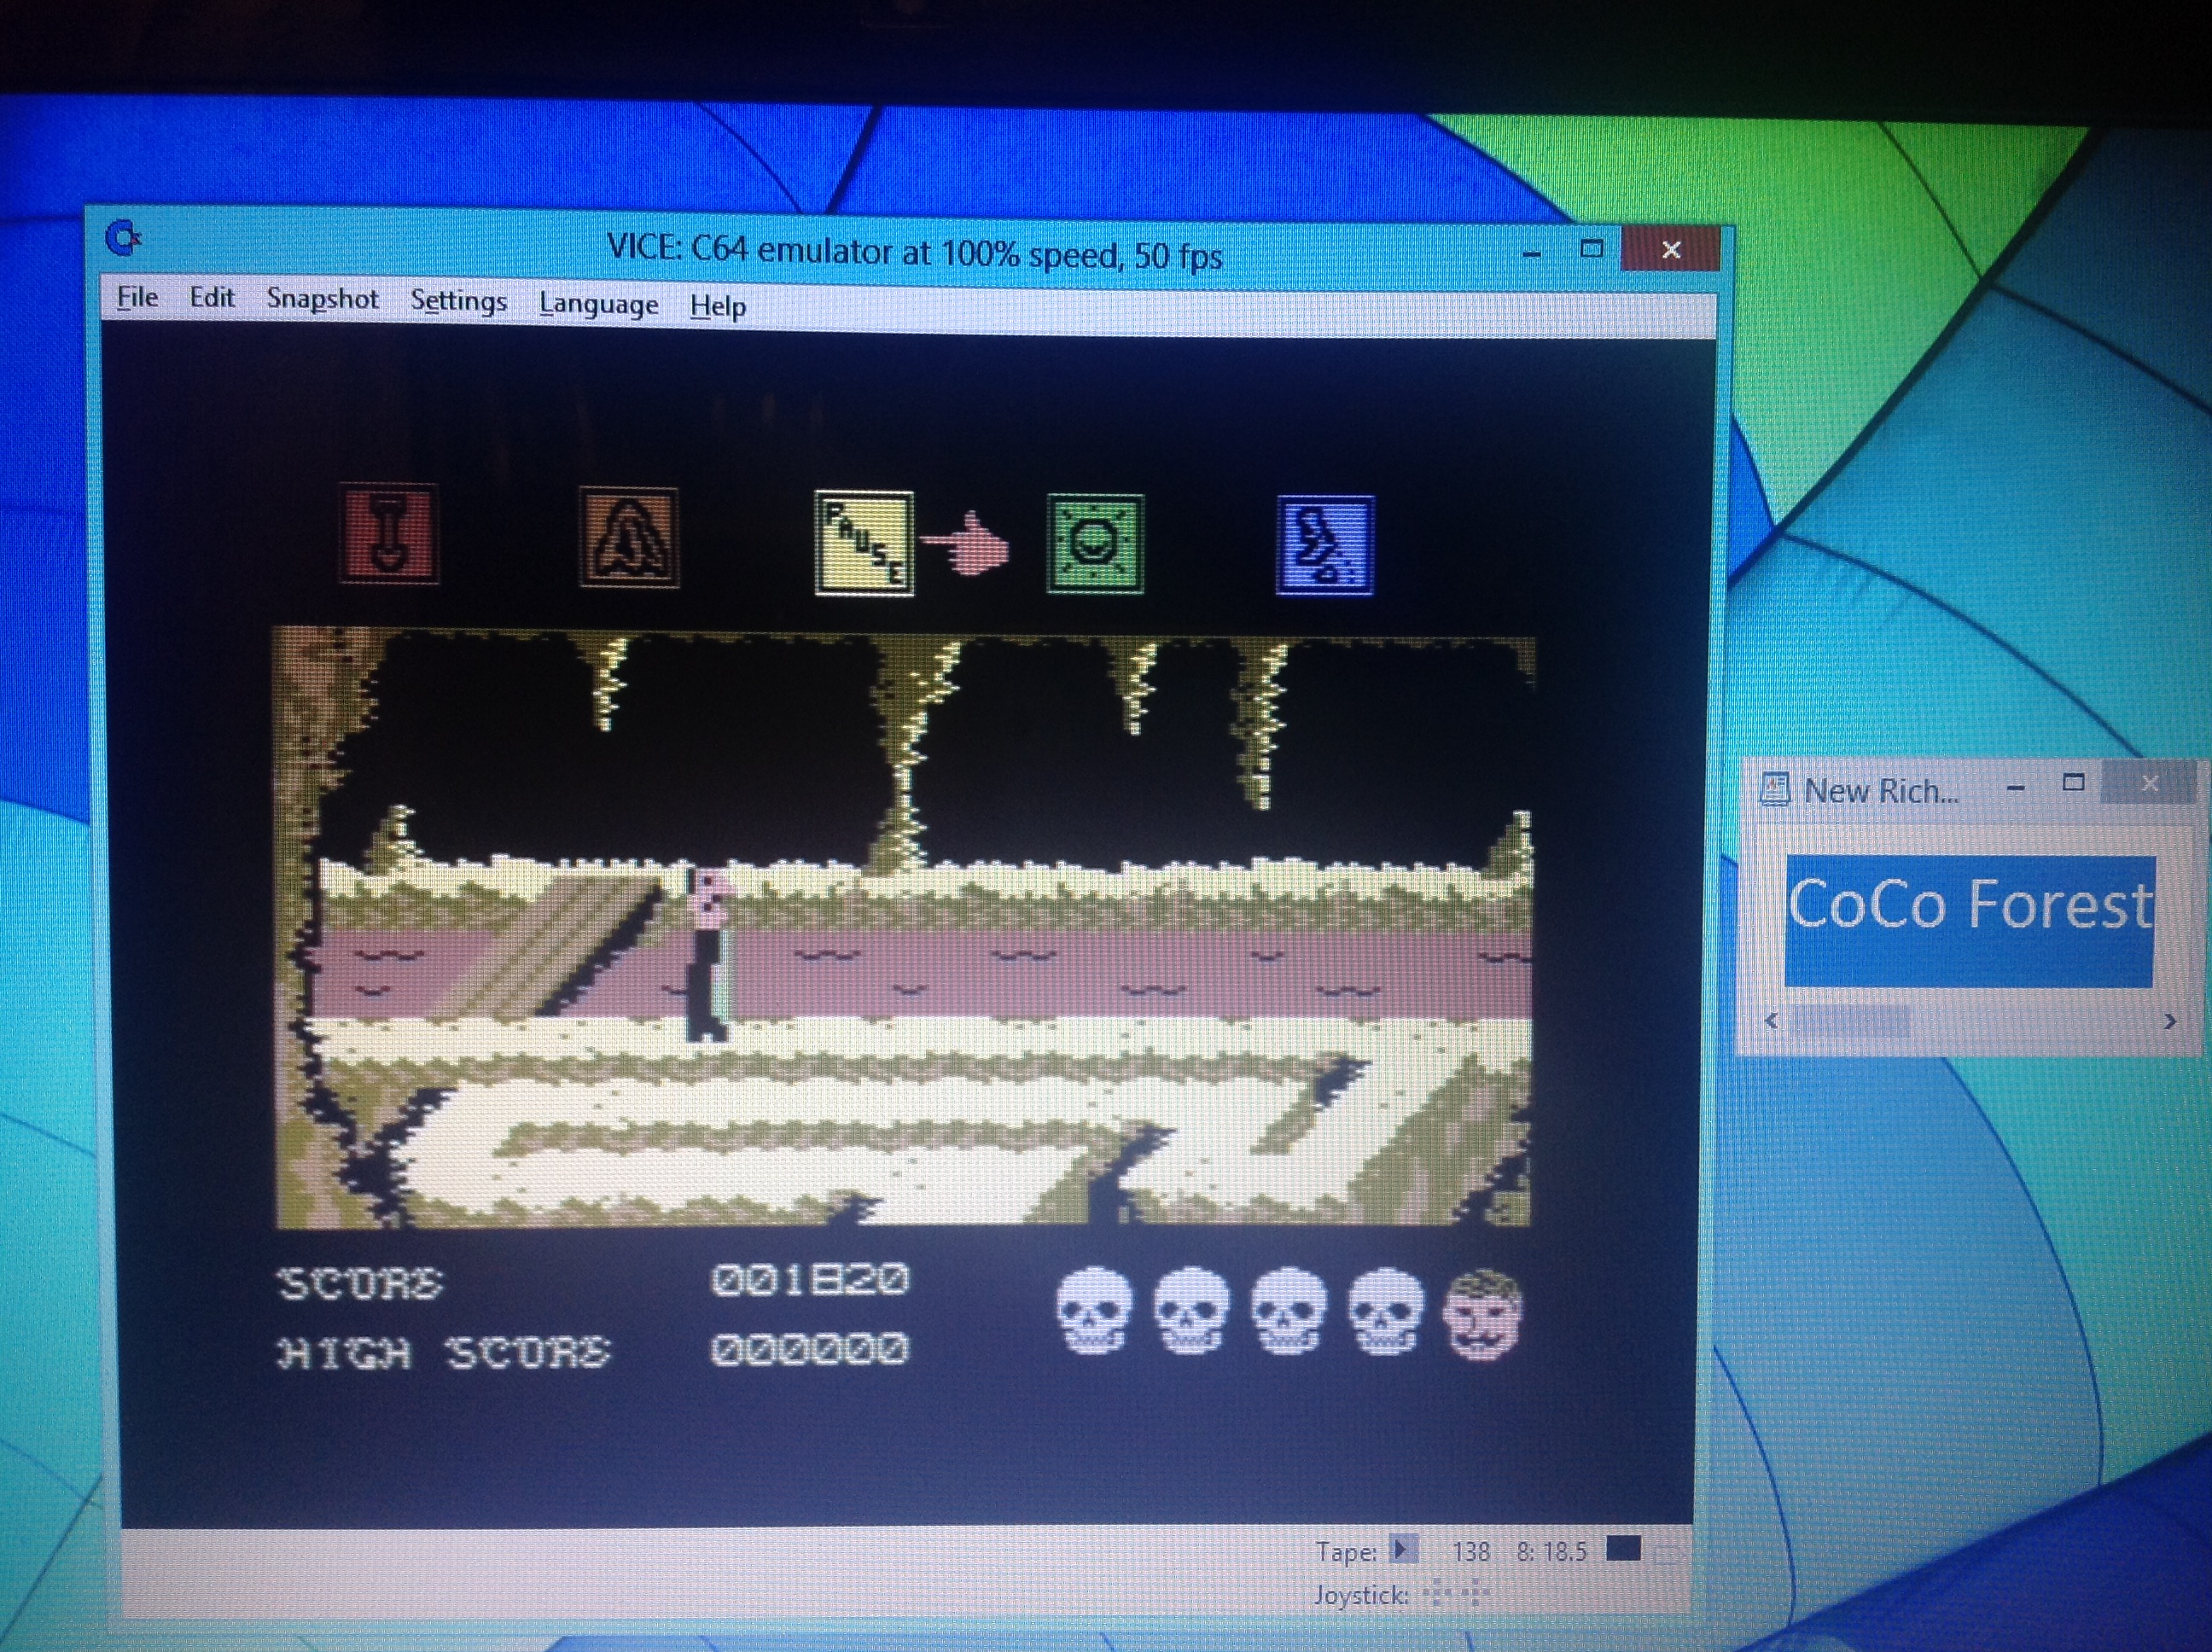 CoCoForest: Dragonskulle [Bonus 1000000 Completed] (Commodore 64 Emulated) 1,820 points on 2018-10-19 13:21:36